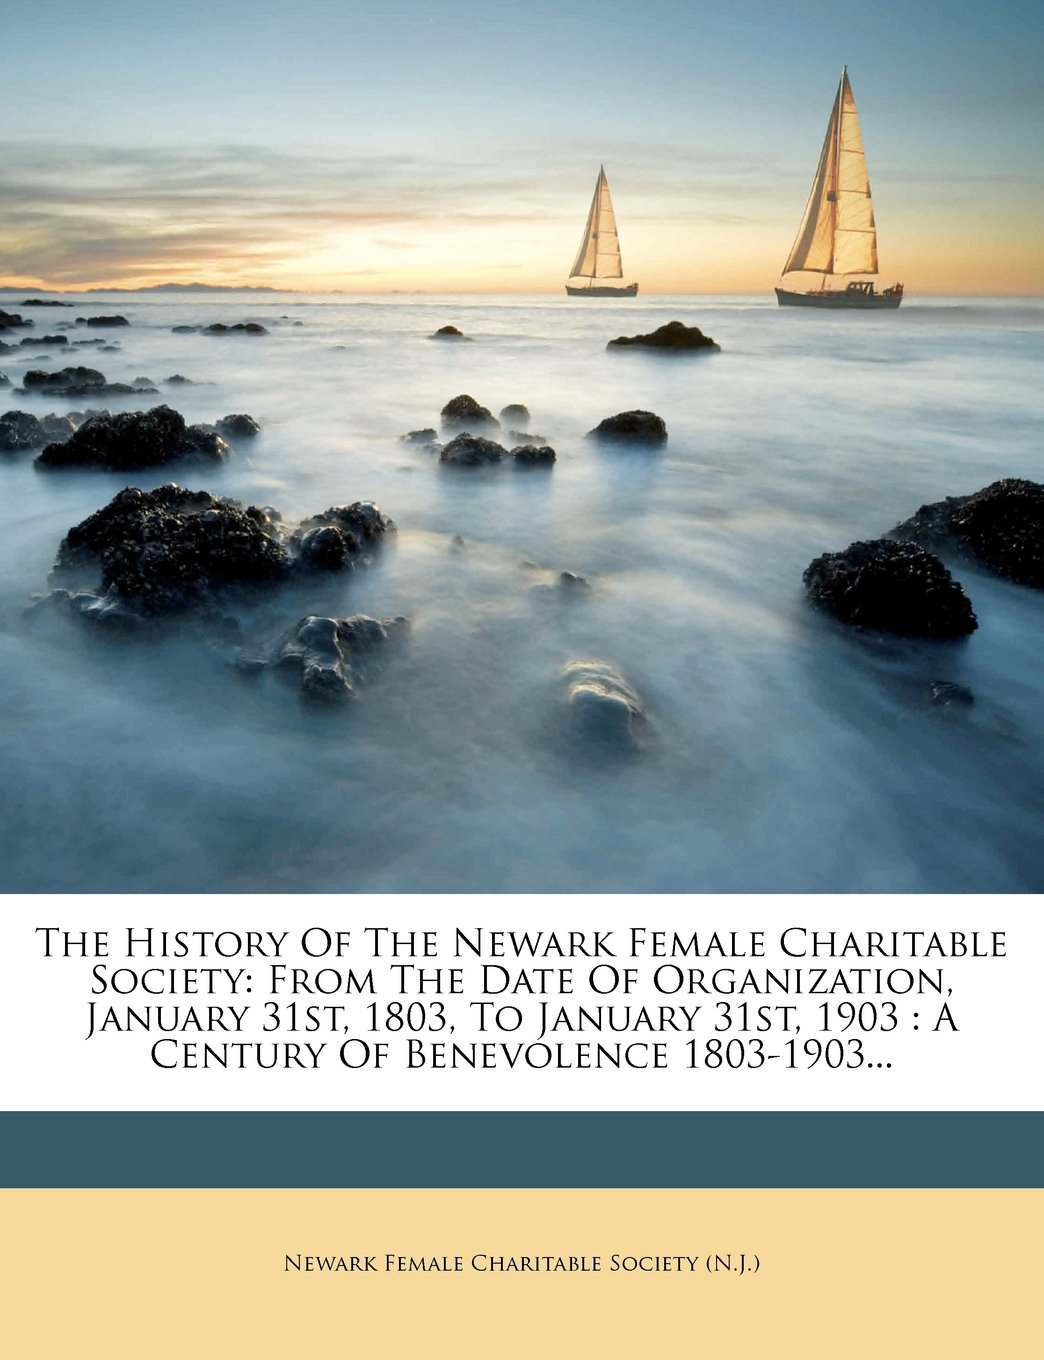 The History Of The Newark Female Charitable Society: From The Date Of Organization, January 31st, 1803, To January 31st, 1903 : A Century Of Benevolence 1803-1903... pdf epub